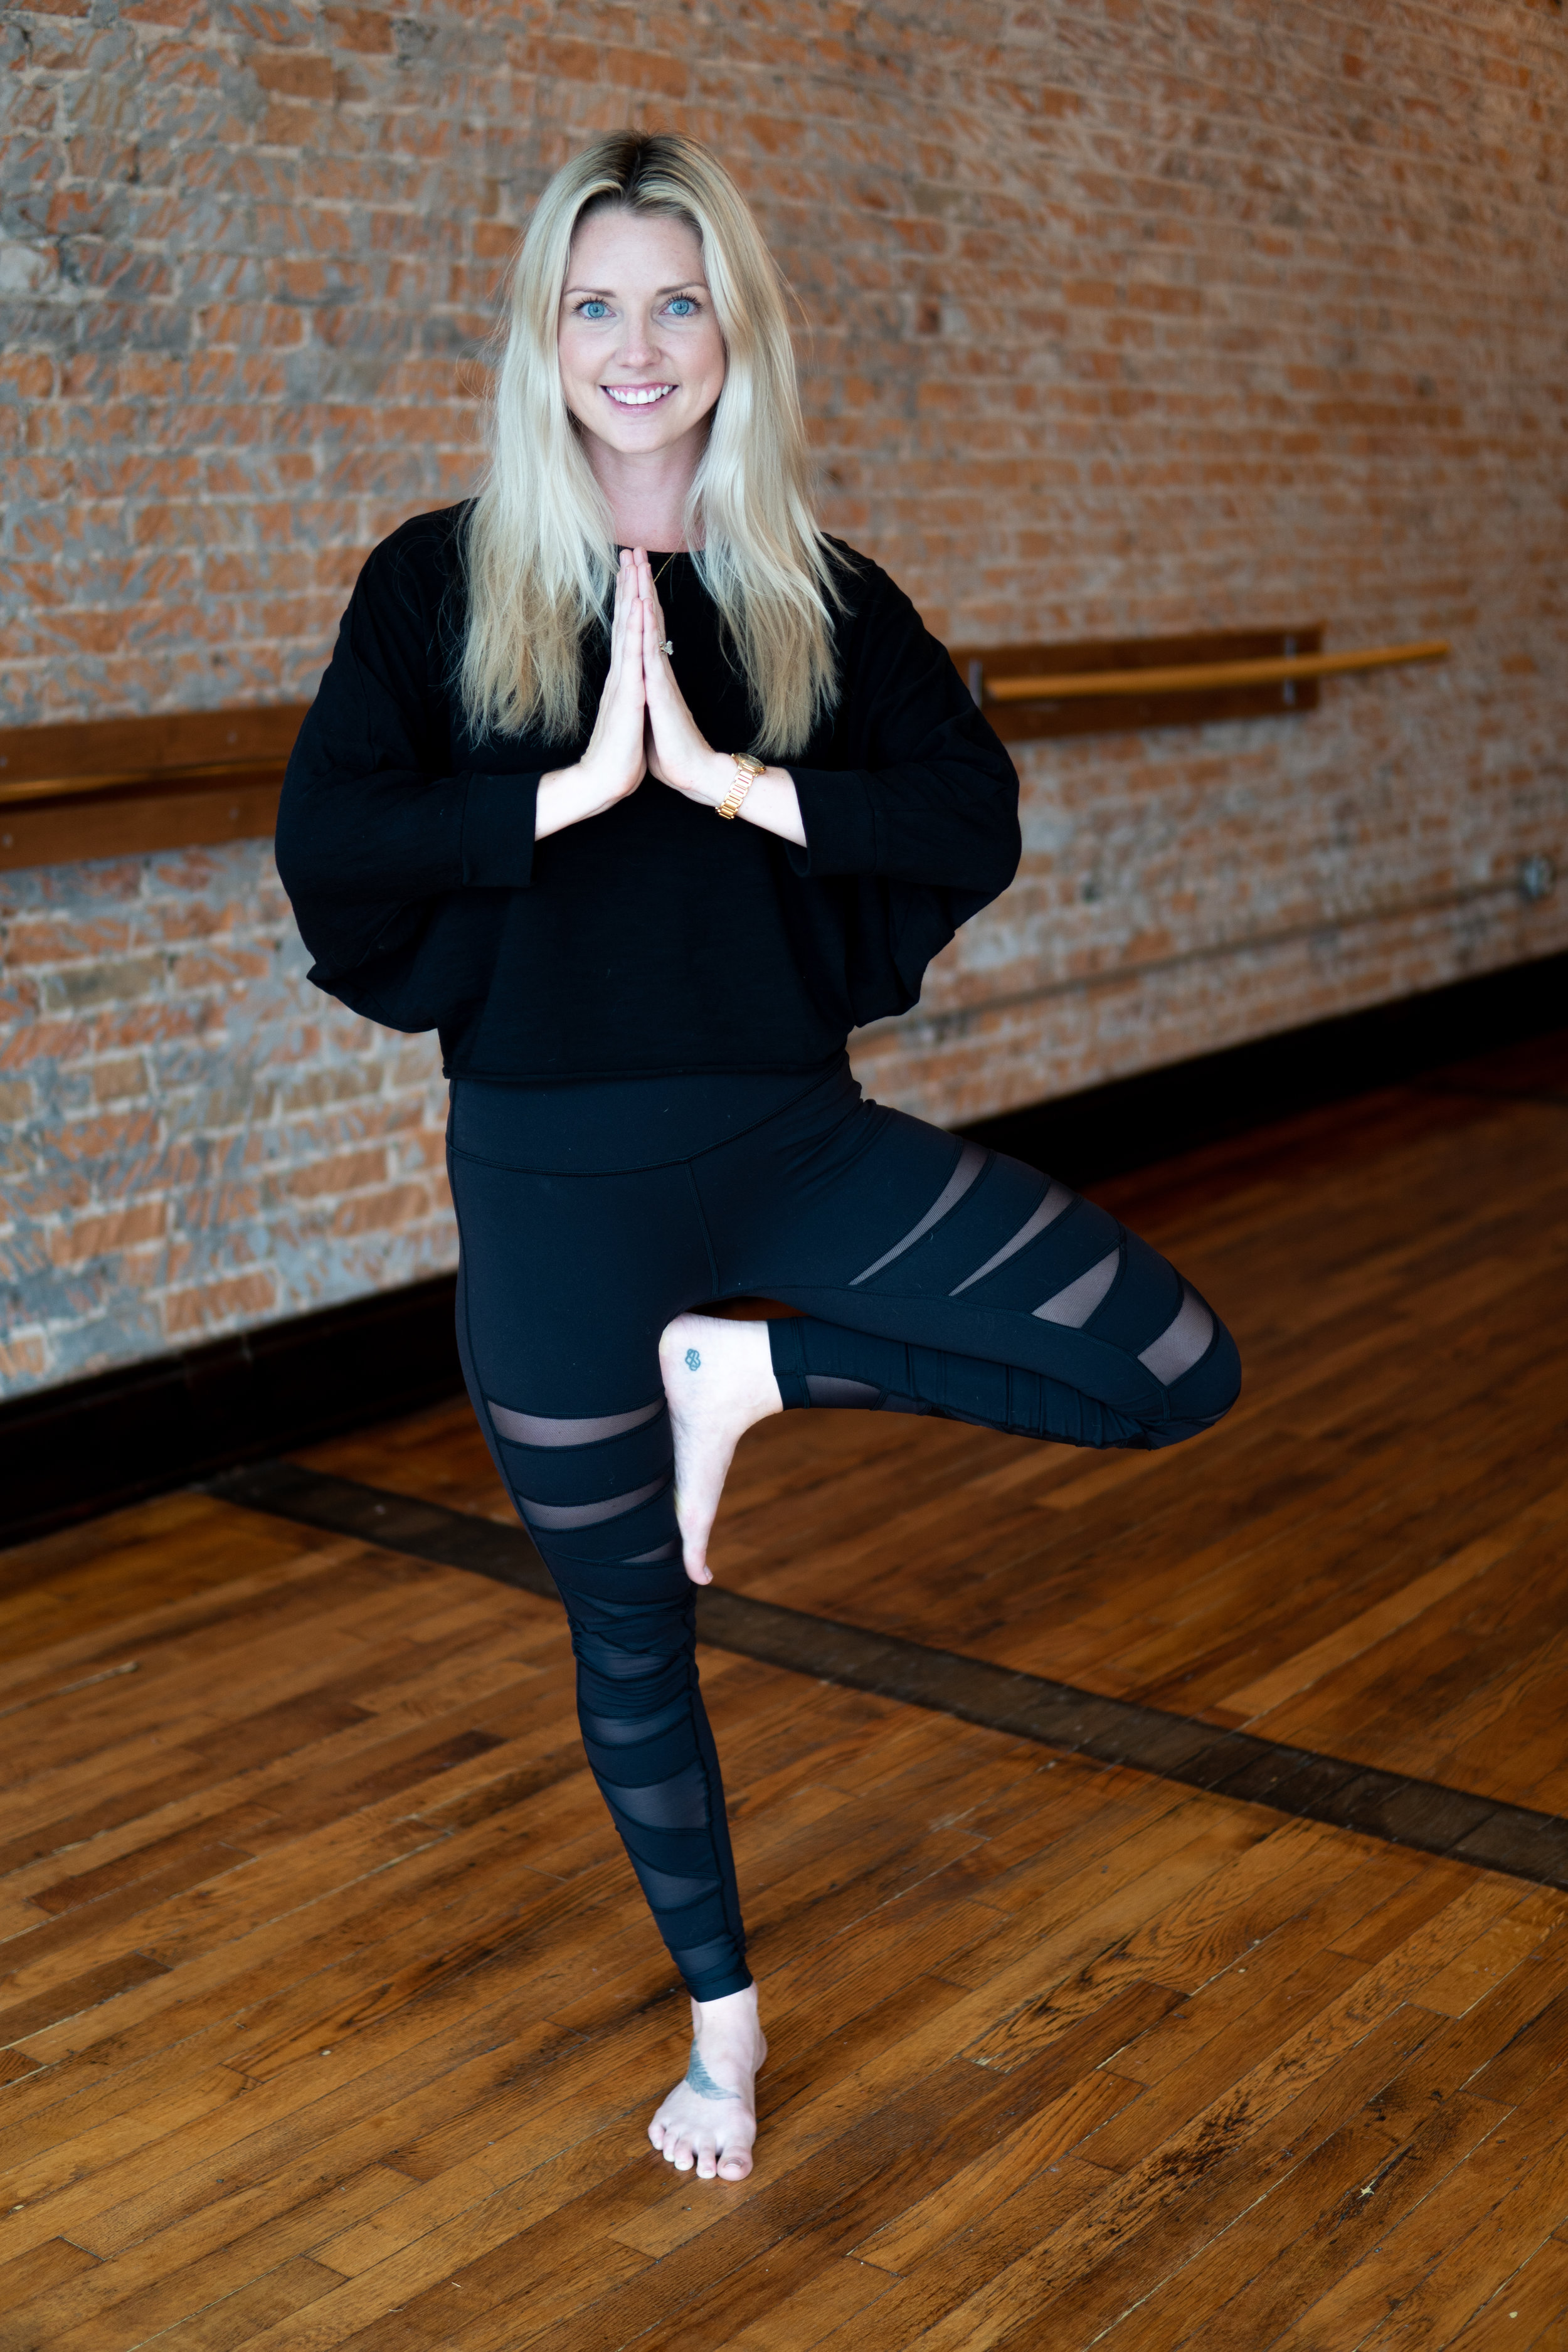 """CHELSEA YARBROUGH  DIRECTOR OF OPERATIONS  E-RYT 250  SHE/HER/HERS  Chelsea was drawn to yoga as a way to cultivate better mental health– a way to """"workout"""" her mind, and not just her body. Being on her mat grew into a way of life. A few years later she moved to Chicago and found the universe was giving her the chance to invest in herself and she completed her 250 hour Power Yoga Training with Corepower Yoga. Since then she has also completed training in Prenatal, and Kids Yoga. Chelsea loves to guide her class in a creative flow that celebrates what their bodies can do. Her music inspires you to quiet your mind and let your body take the lead. She encourages you to take what you need from your mat and leave behind what you don't. Moving forward Chelsea is partnering with Jessica to open up a sister studio, Sage Yoga Hot, in OTR."""